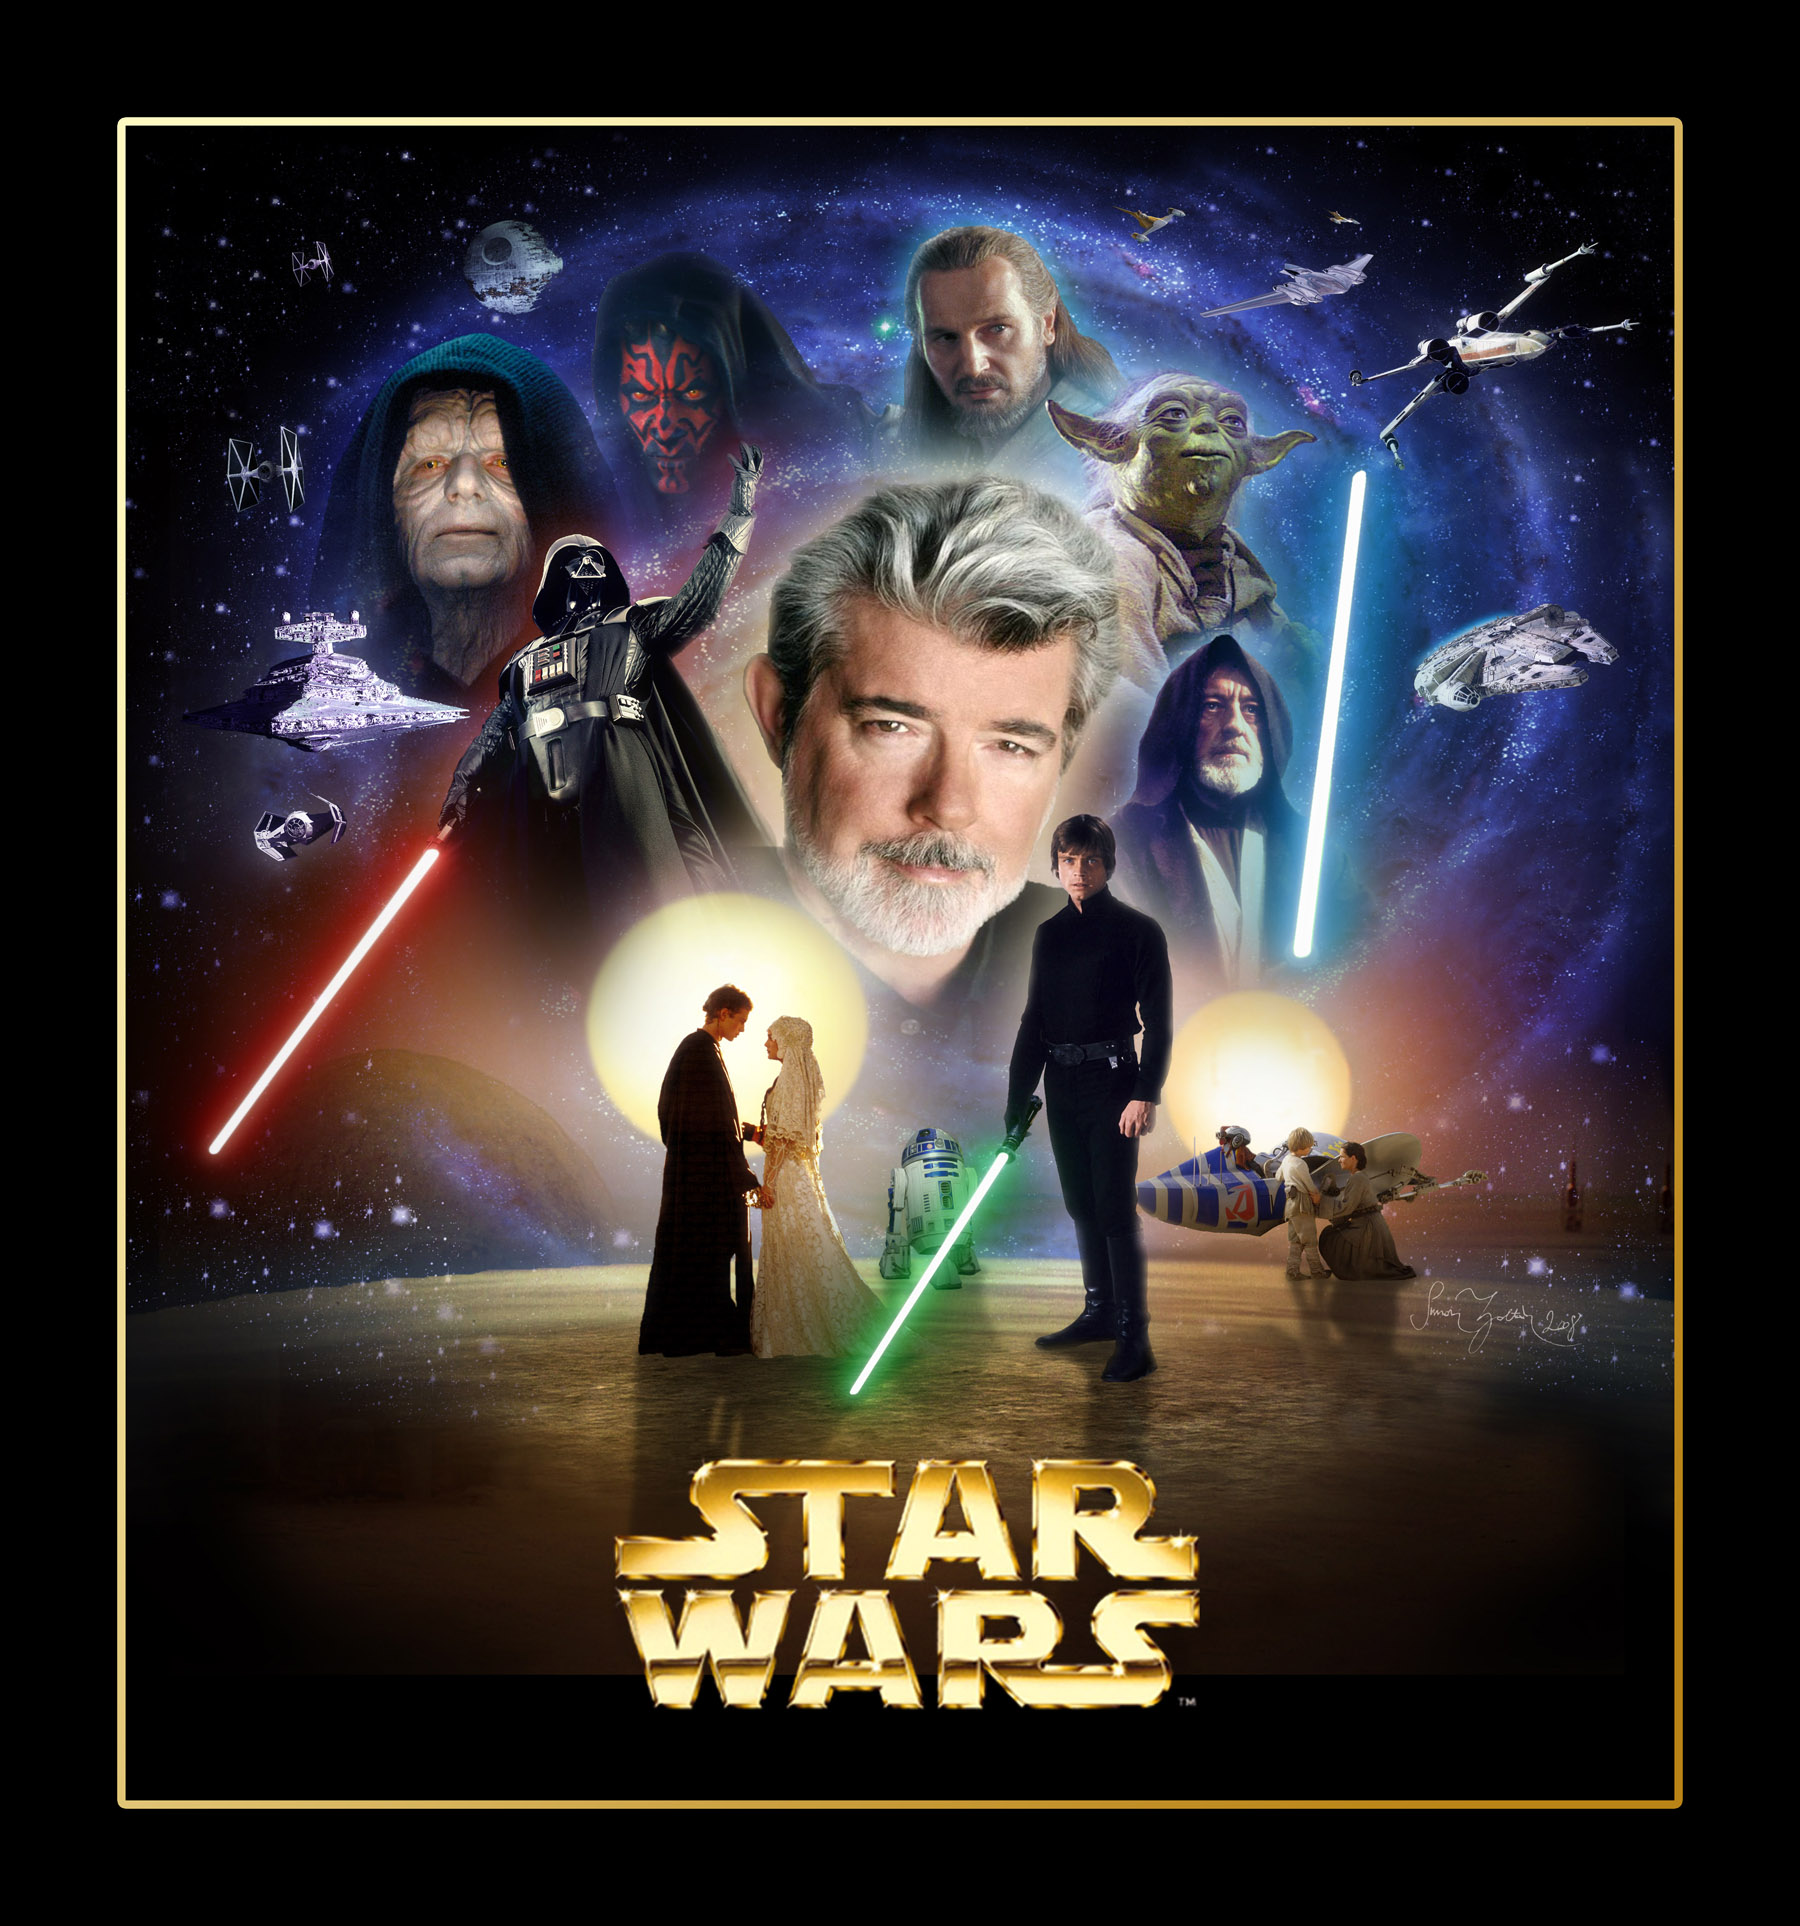 SimonZ's Home Page - Star Wars wallpapers, posters, cover designs Starwars